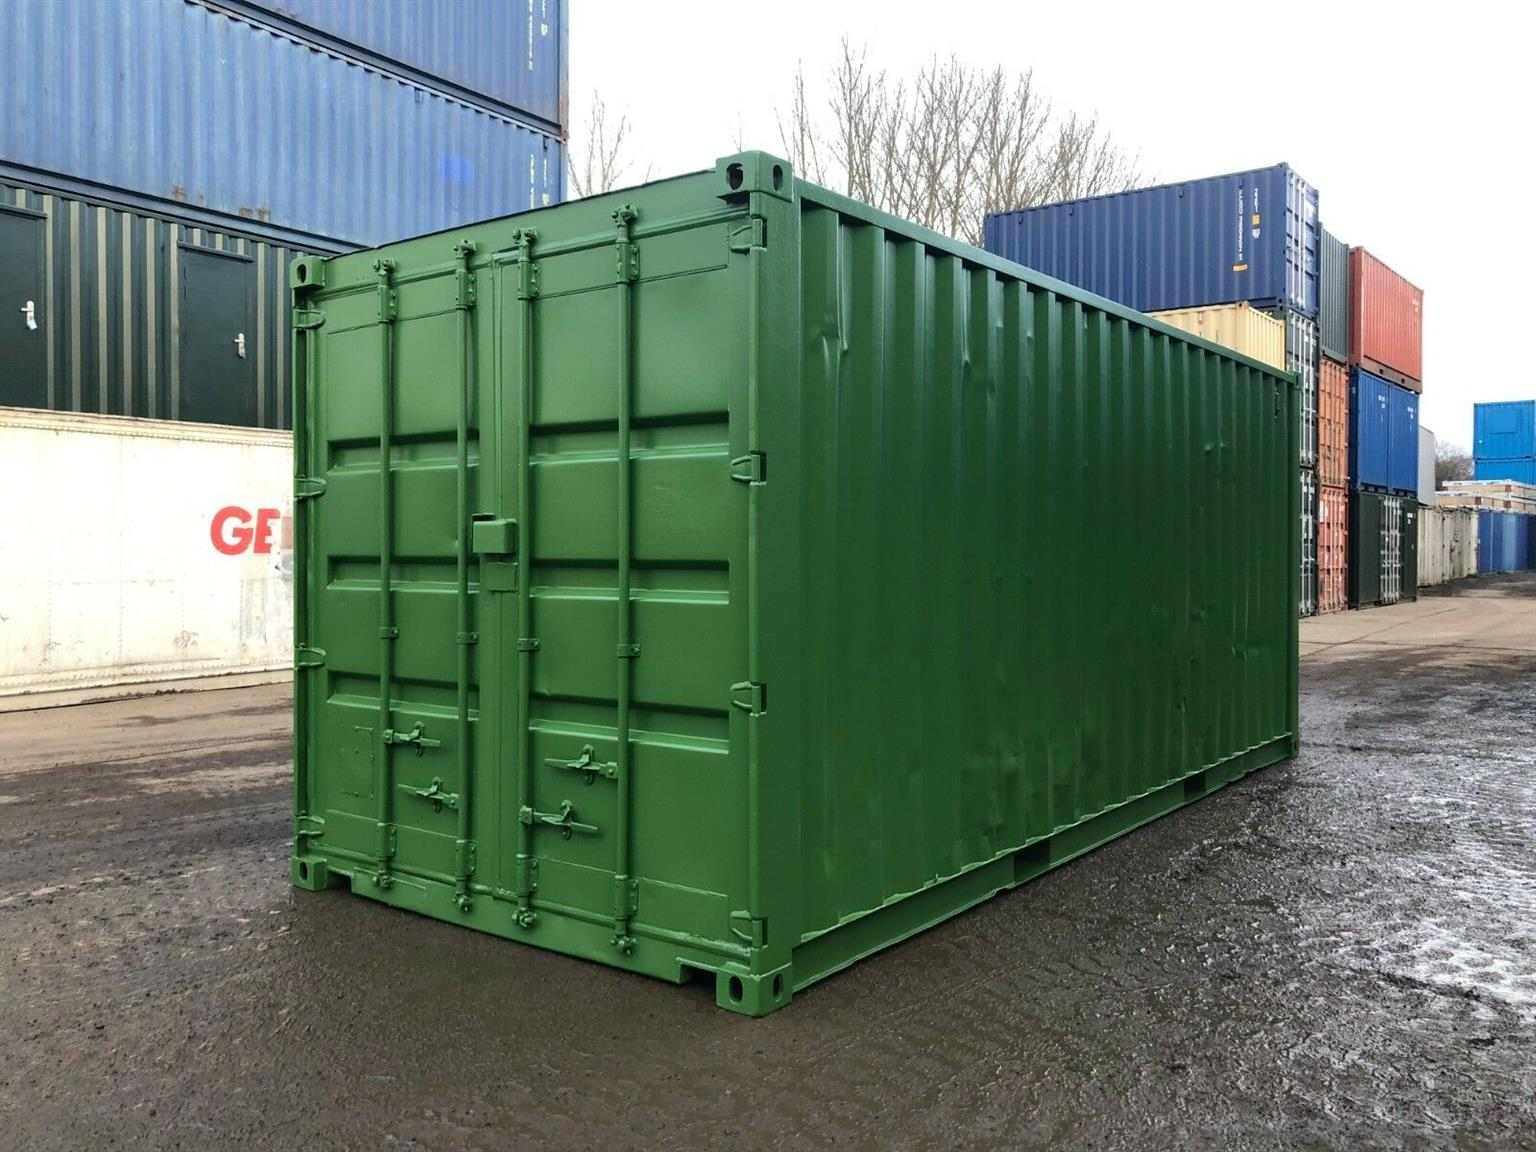 Newly painted second ahnd 6M shipping containers for sale